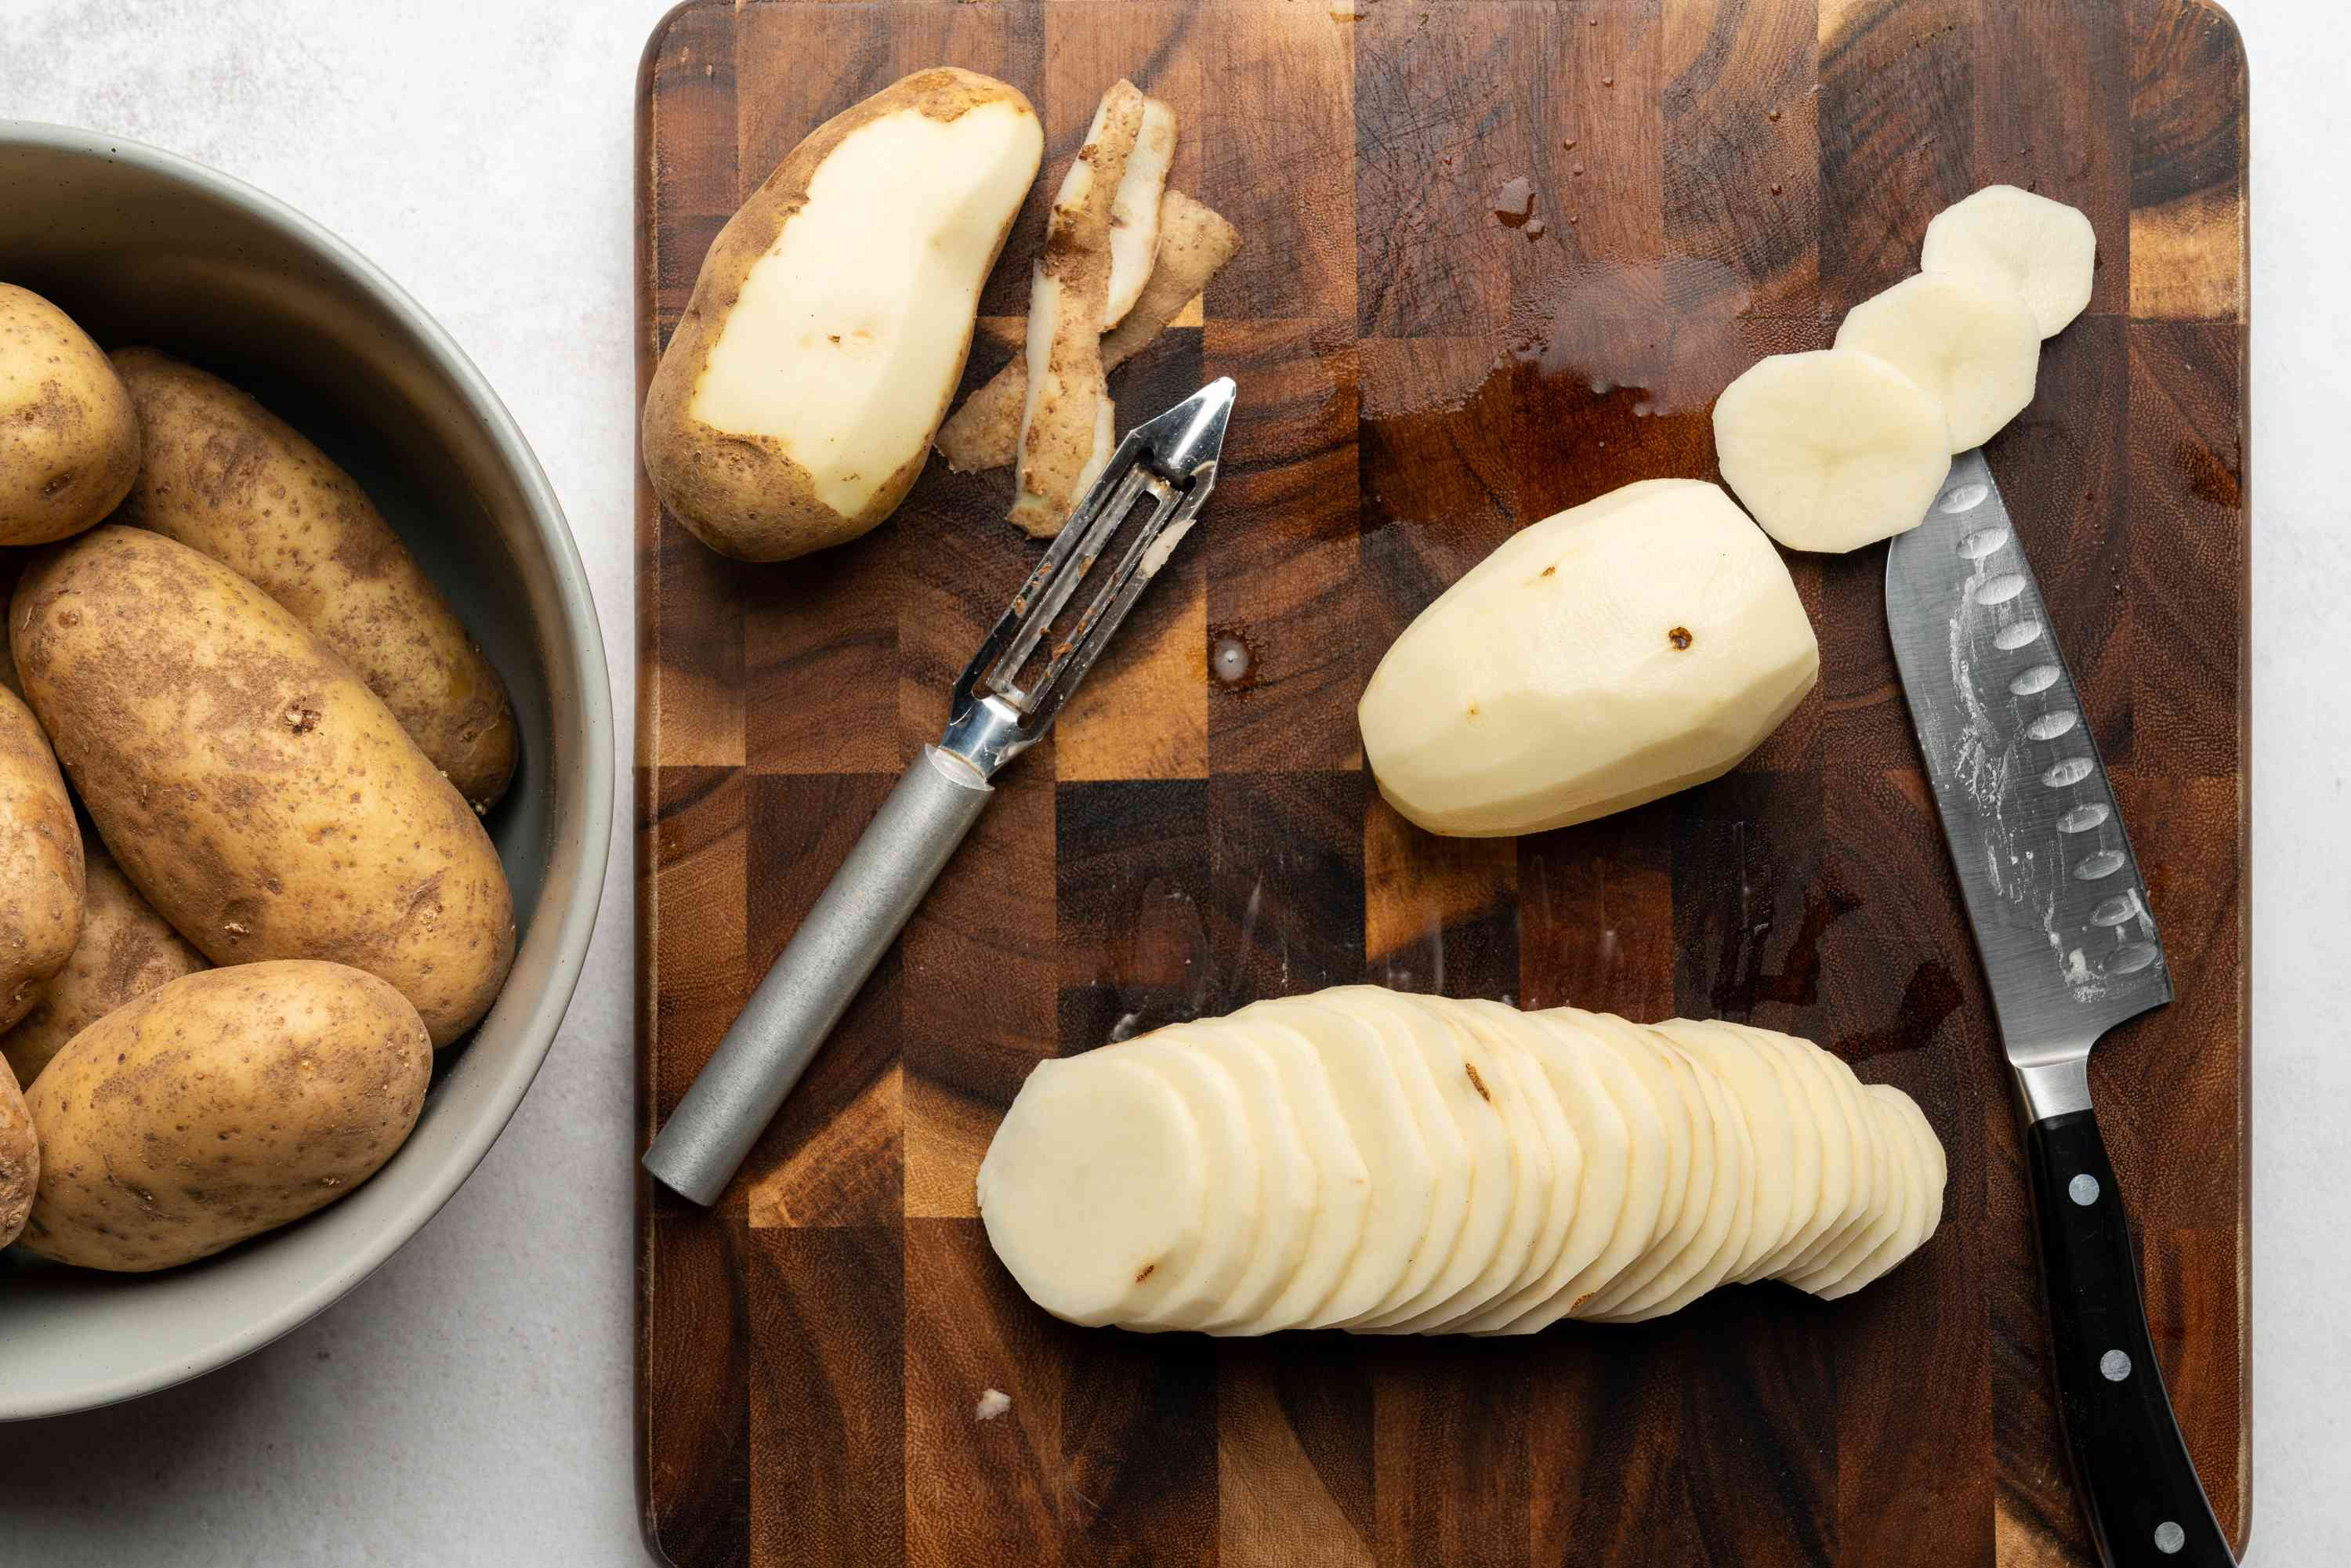 peeled and sliced potatoes on a cutting board